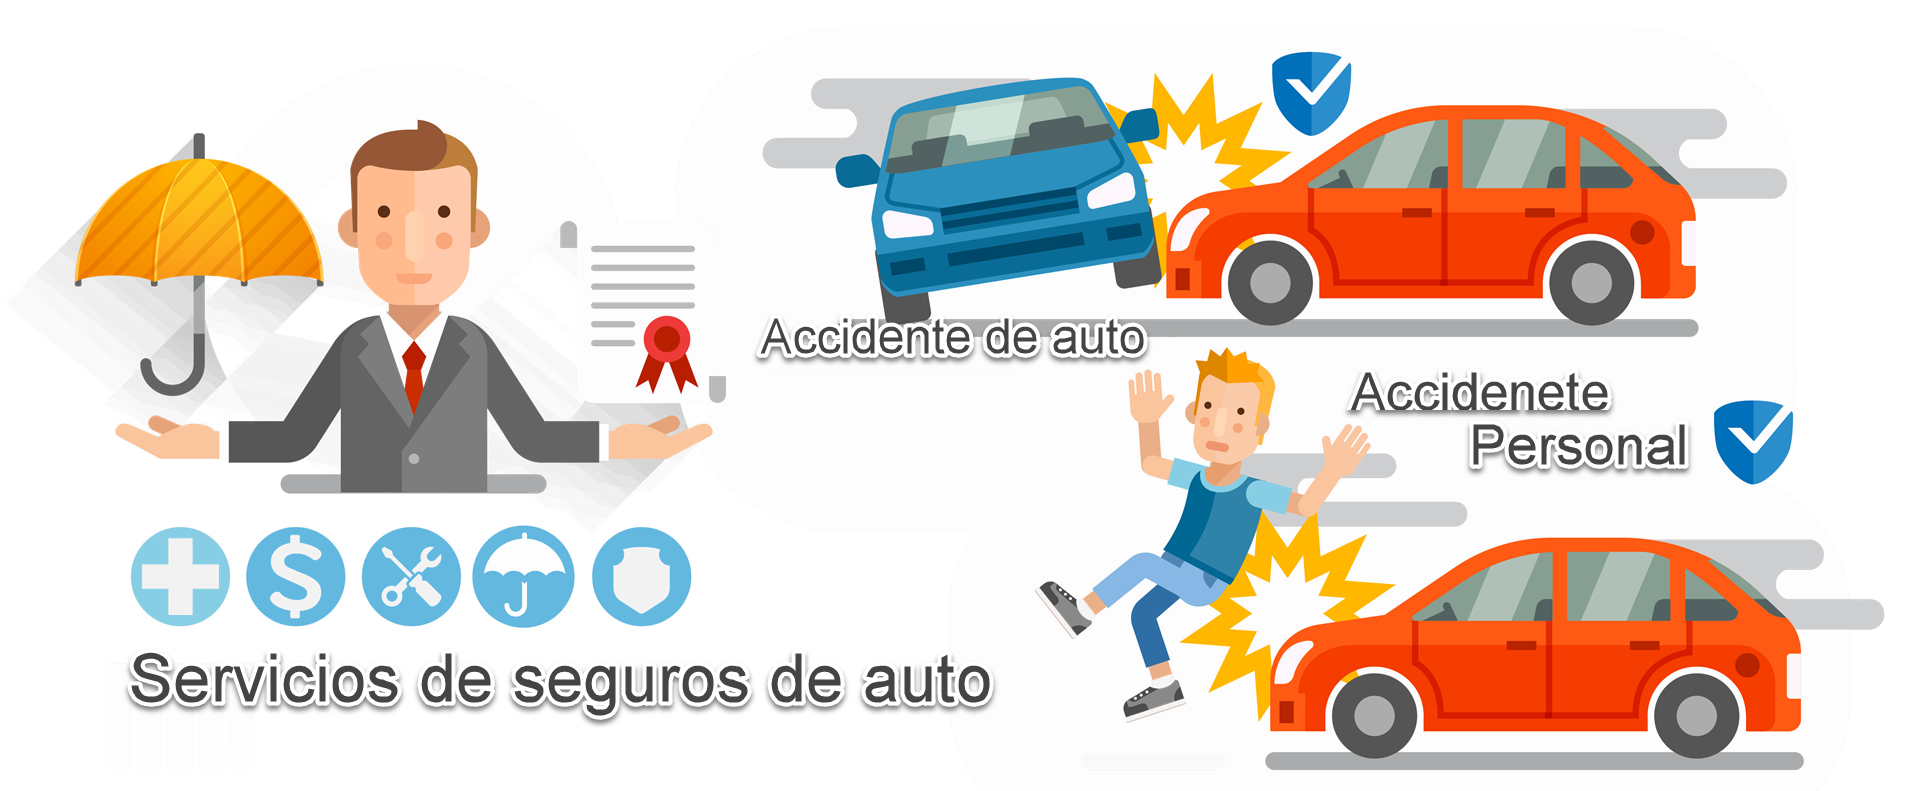 Auto Insurance With Images Life And Health Insurance